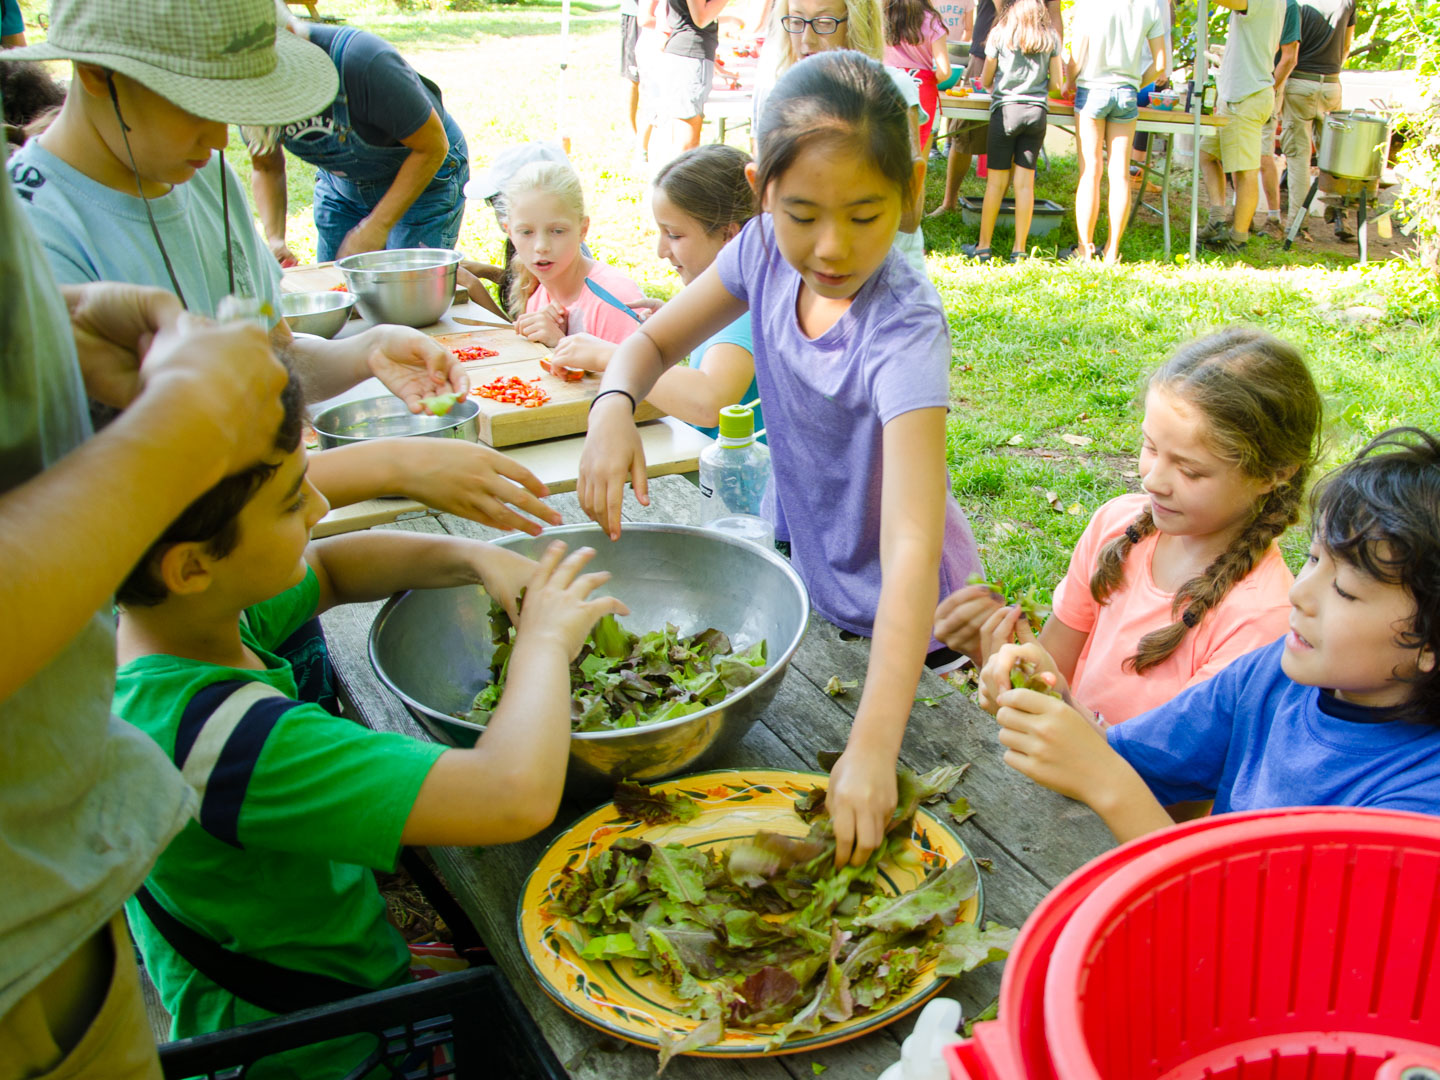 Campers making salads